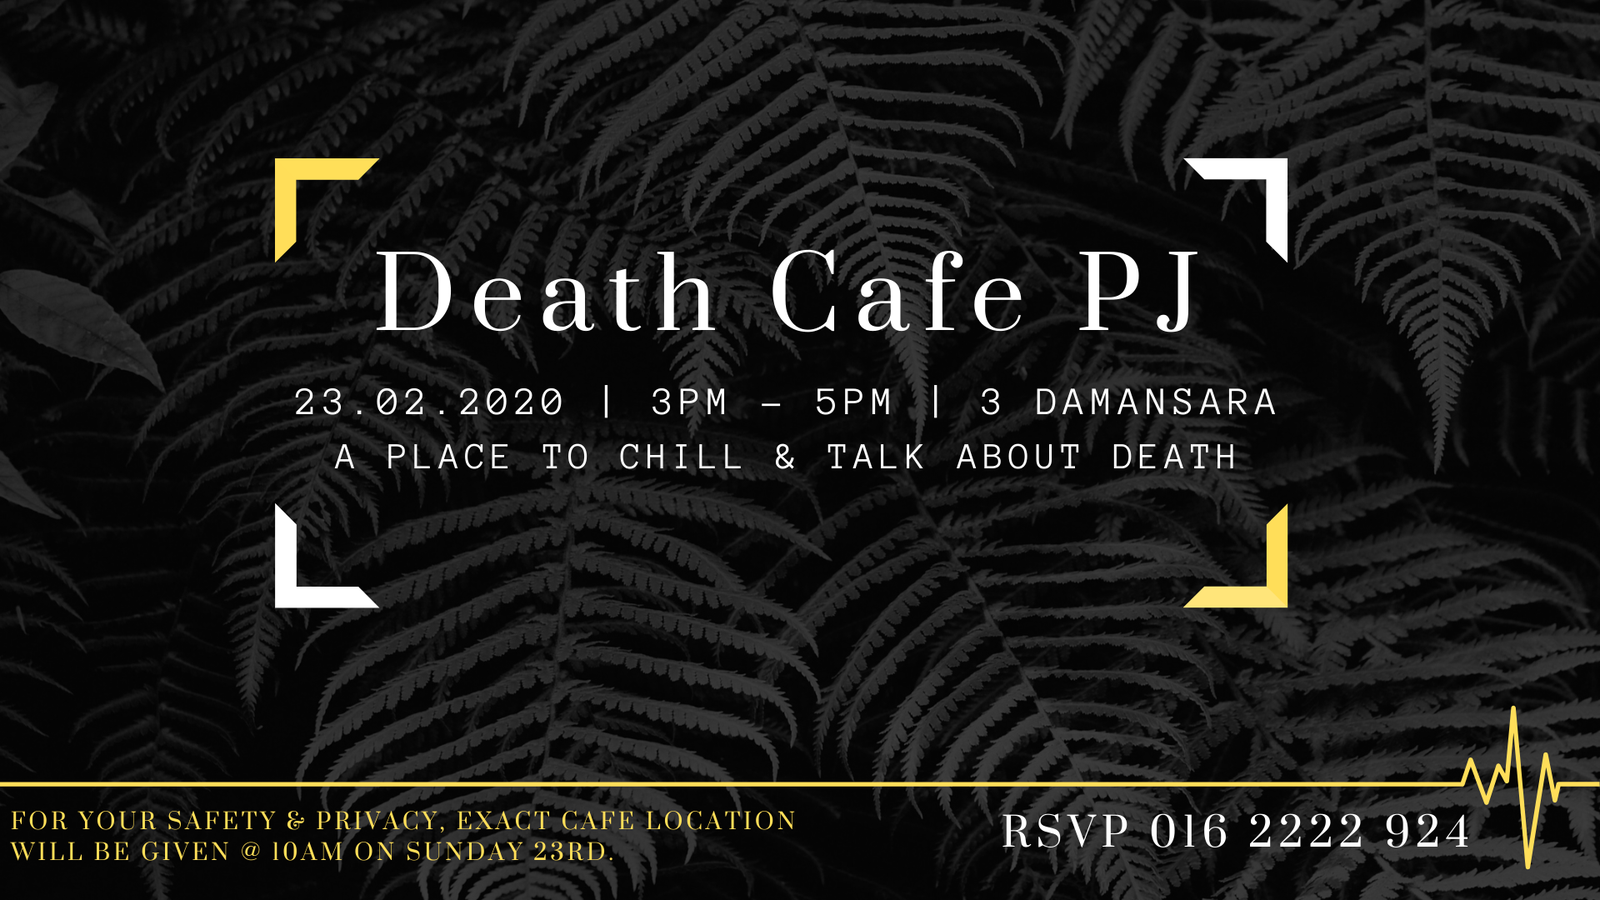 Death Cafe PJ